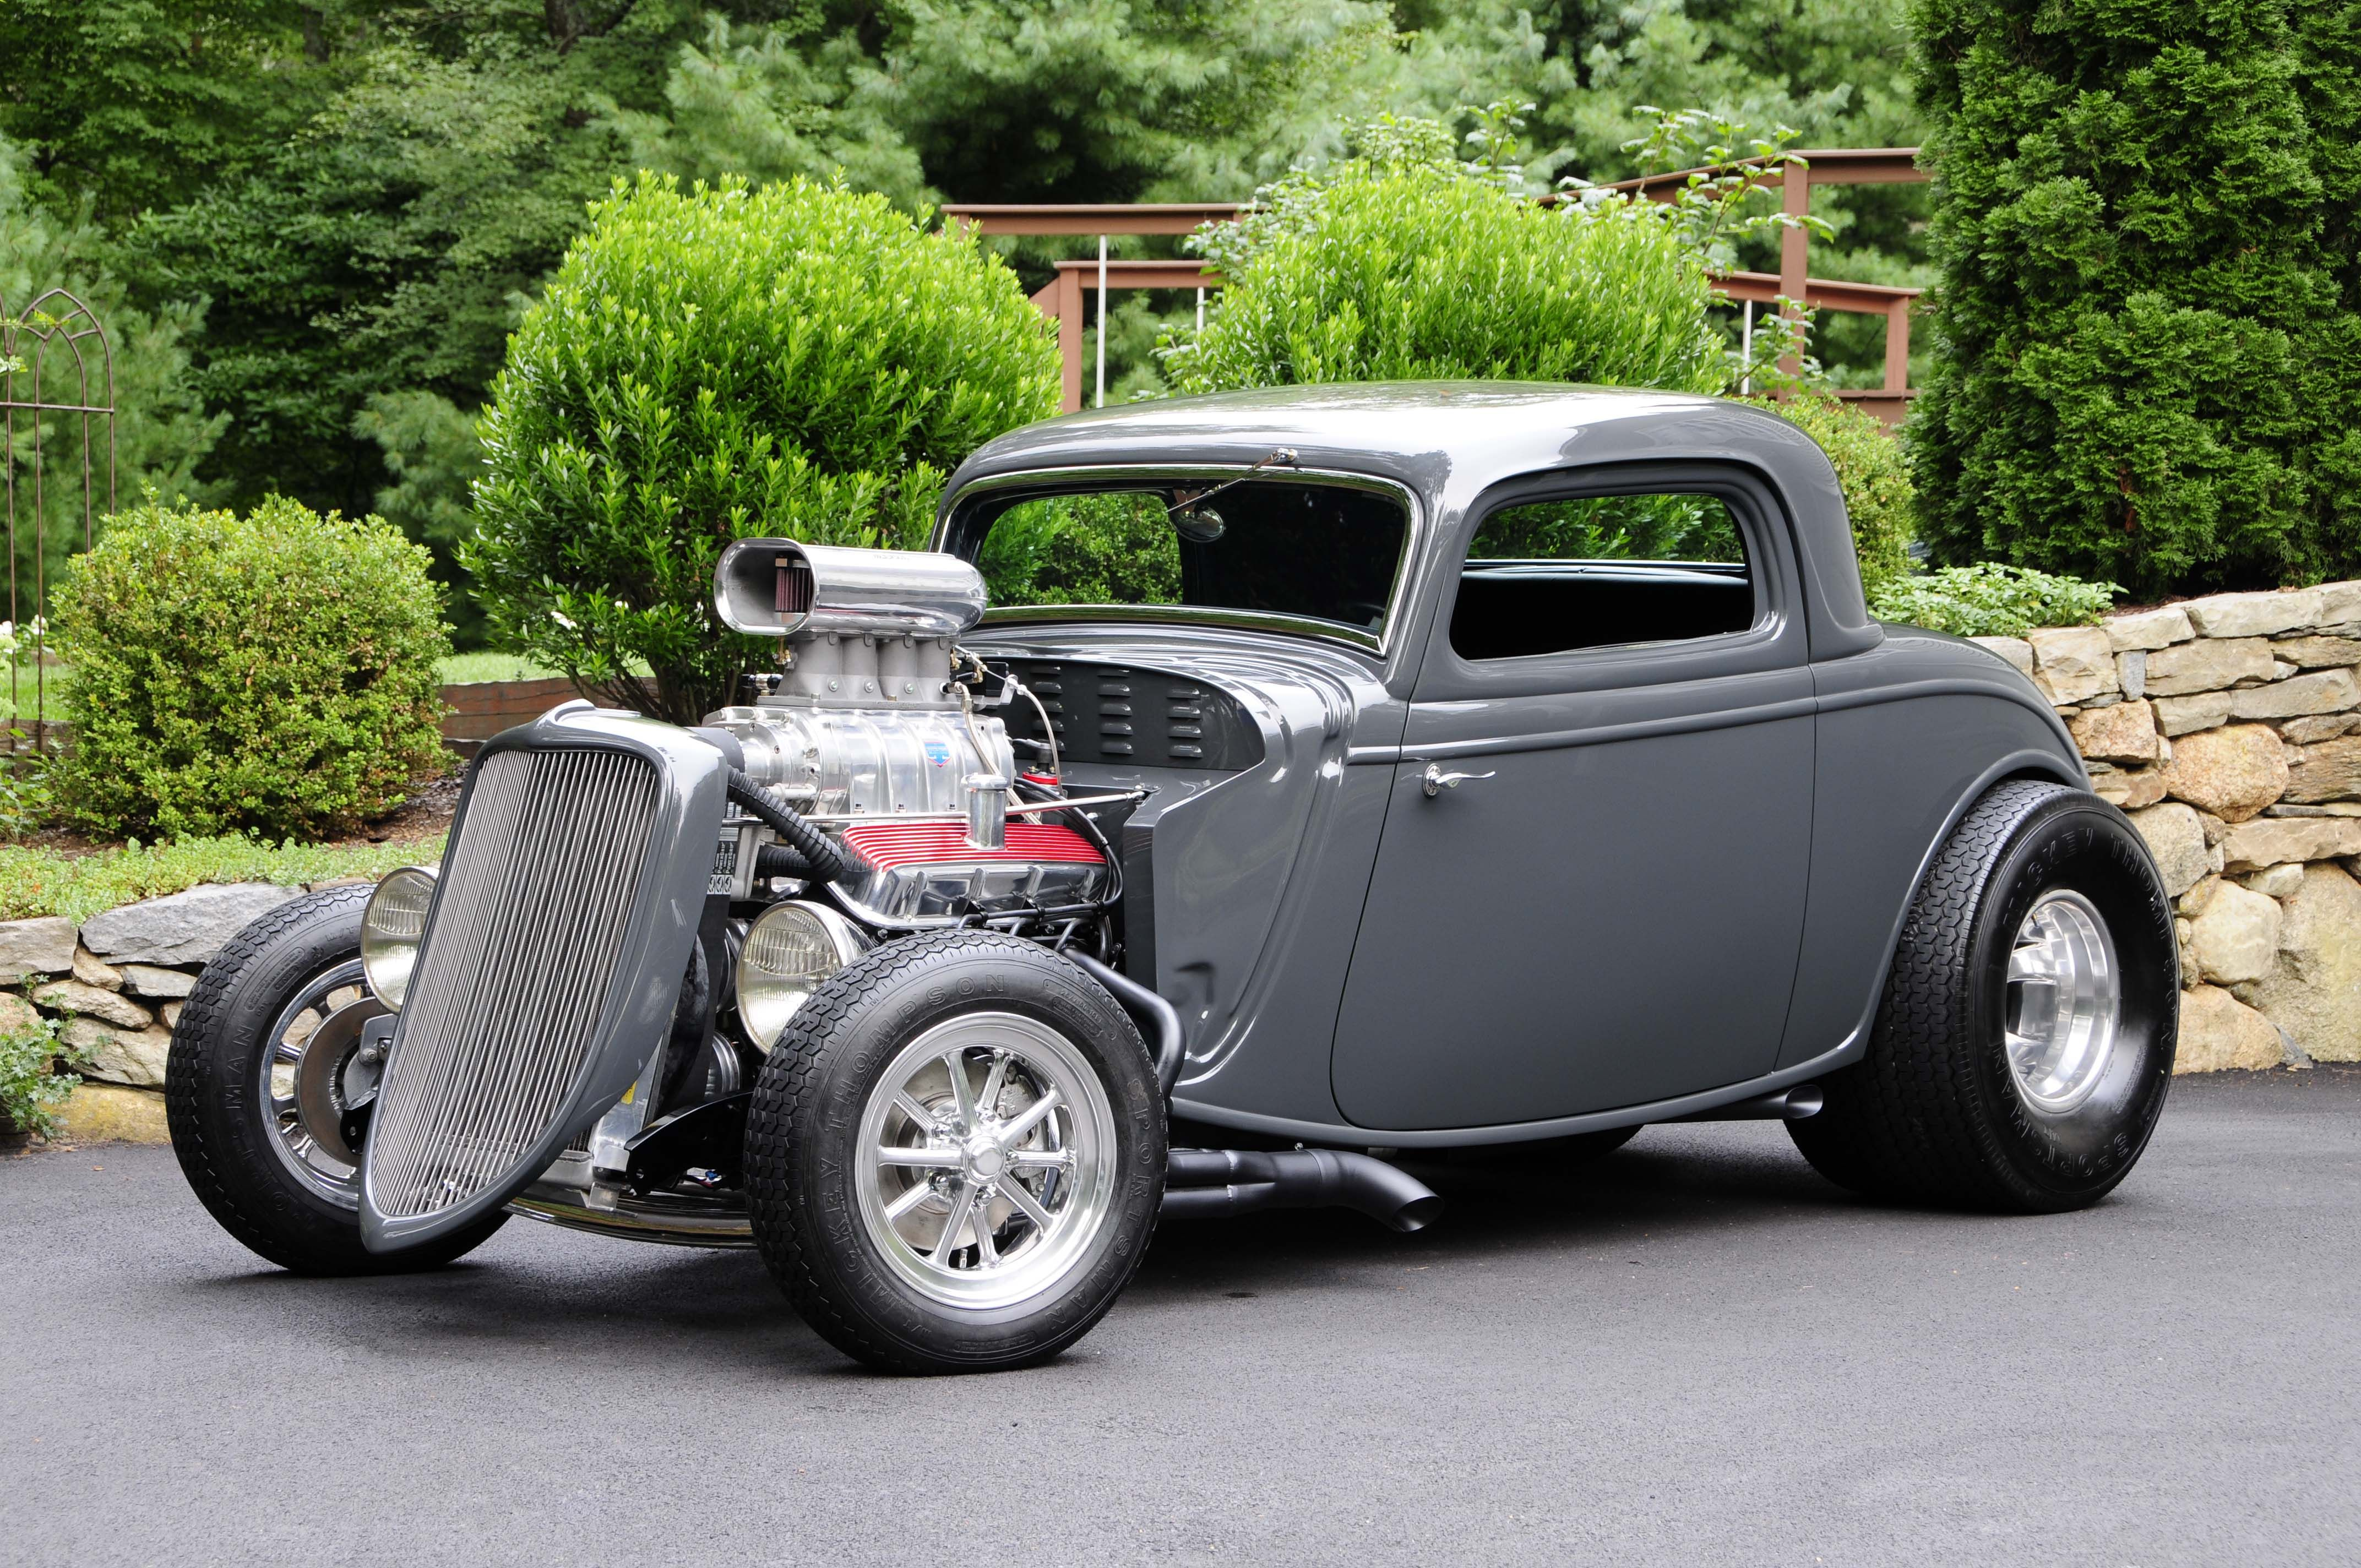 Dave Bagdon's 1933 Ford Coupe Rules the Streets with a 6-71-Blown